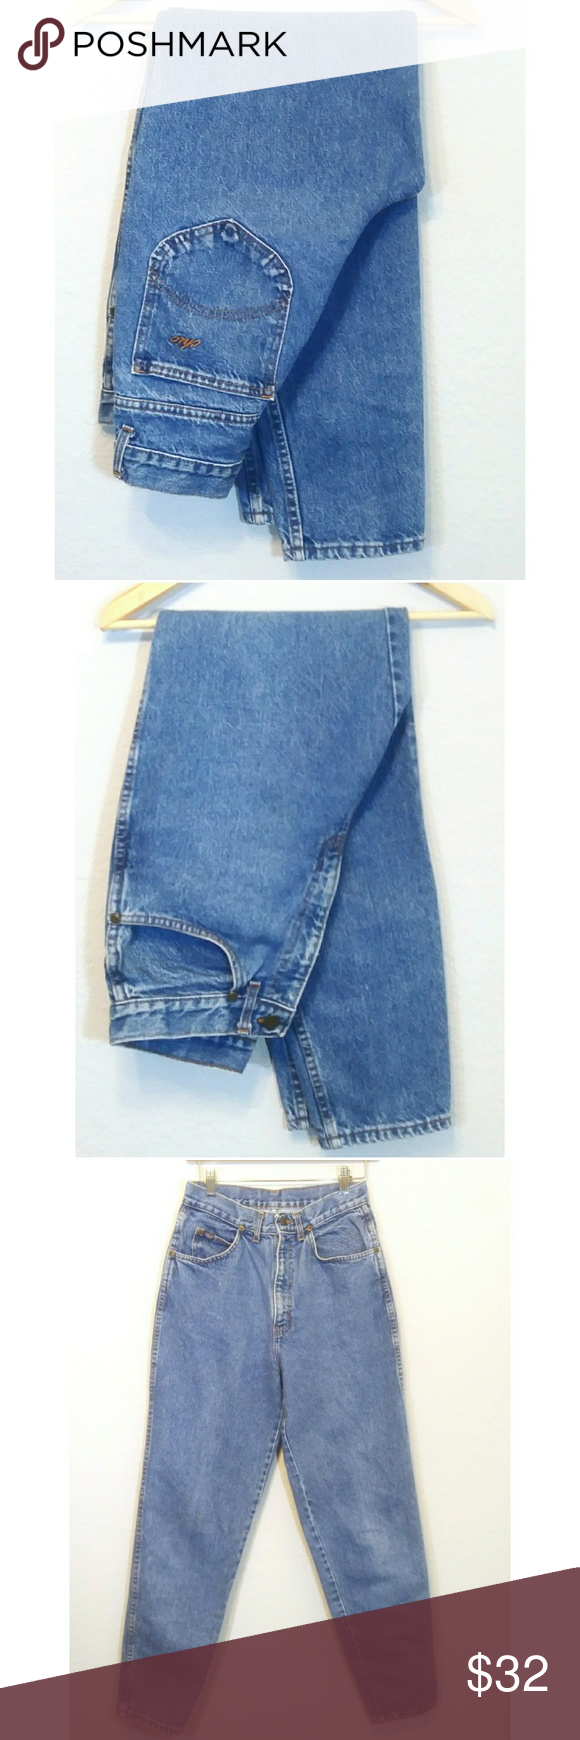 Vintage Chic High Waist Mom Jeans See Meas Vintage Chic Chic Jeans Clothes Design